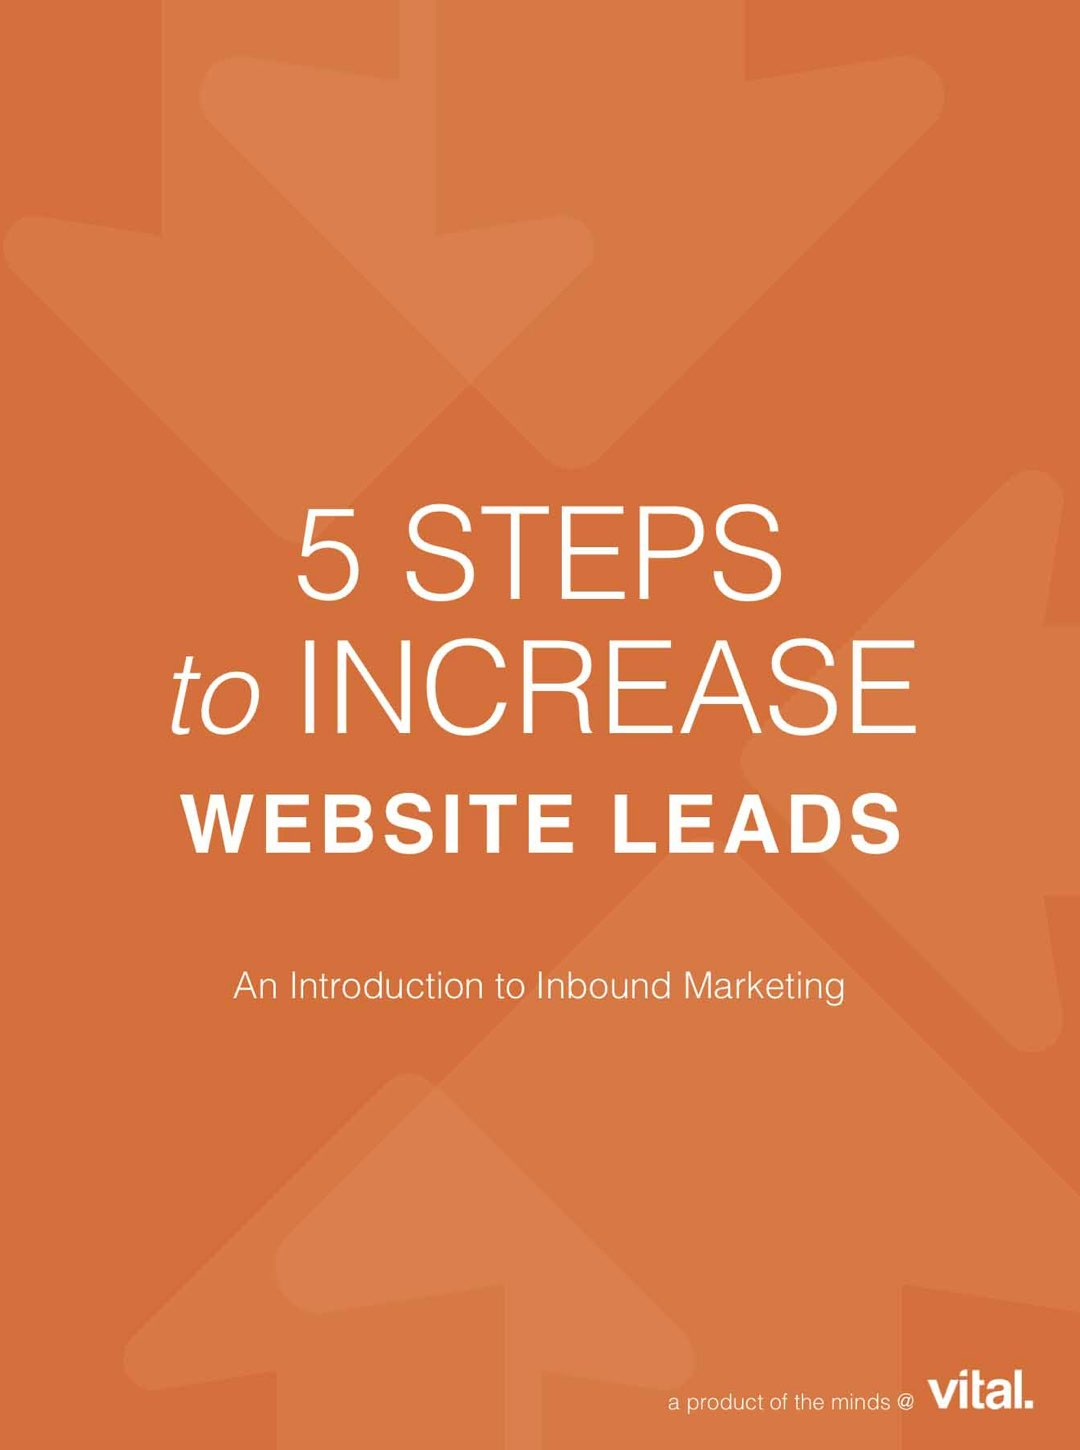 5 Steps to Increase Website Leads